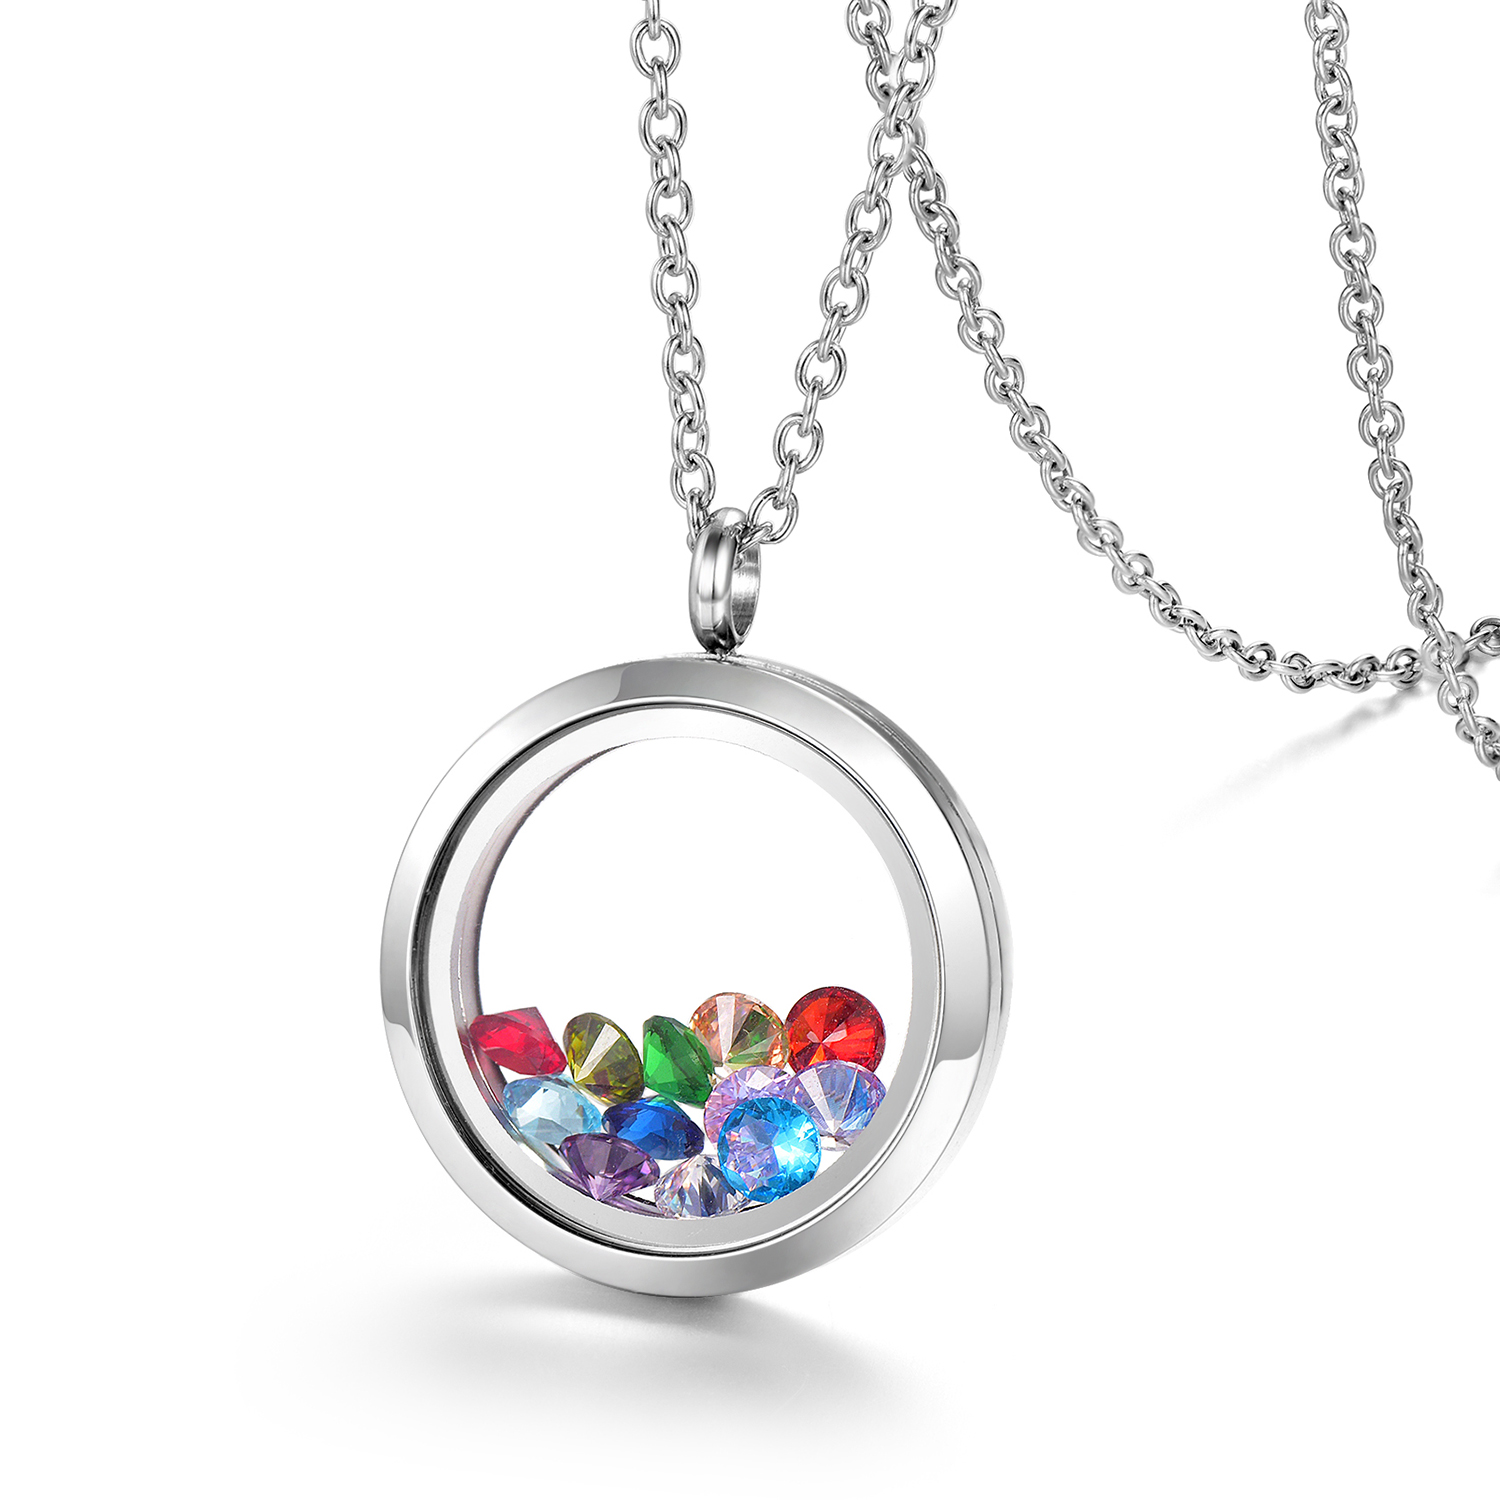 EVERLEAD Living Memory Floating Round Locket Pendant Necklace 30mm  316L Stainless Steel Toughened Glass Free Chain and Zircon